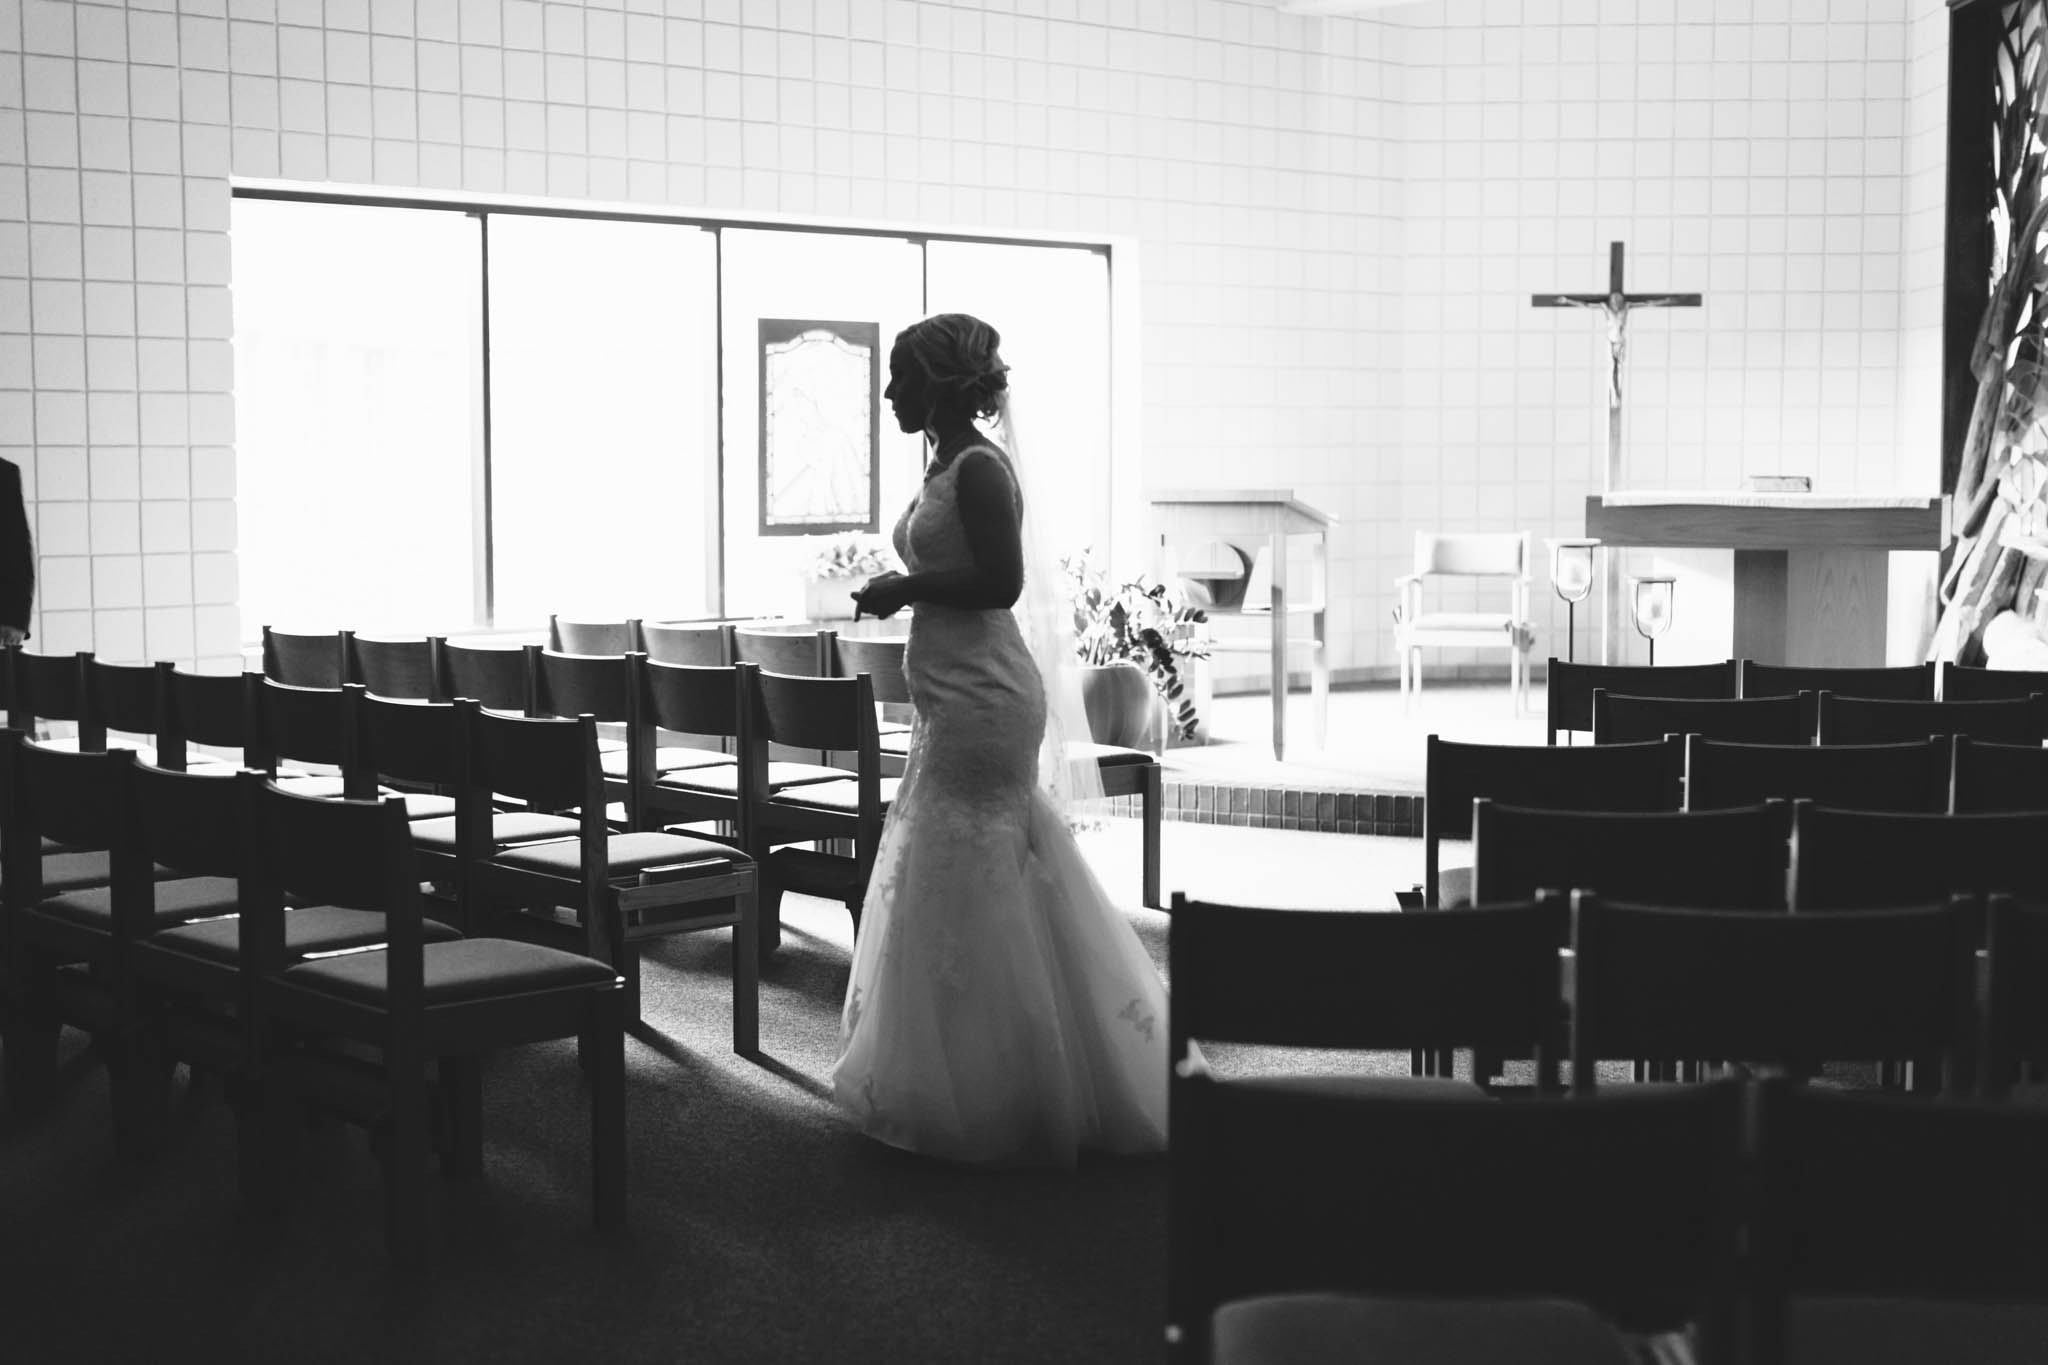 Jillian VanZytveld Photography - Grand Rapids Lifestyle Wedding Photography - 033.jpg